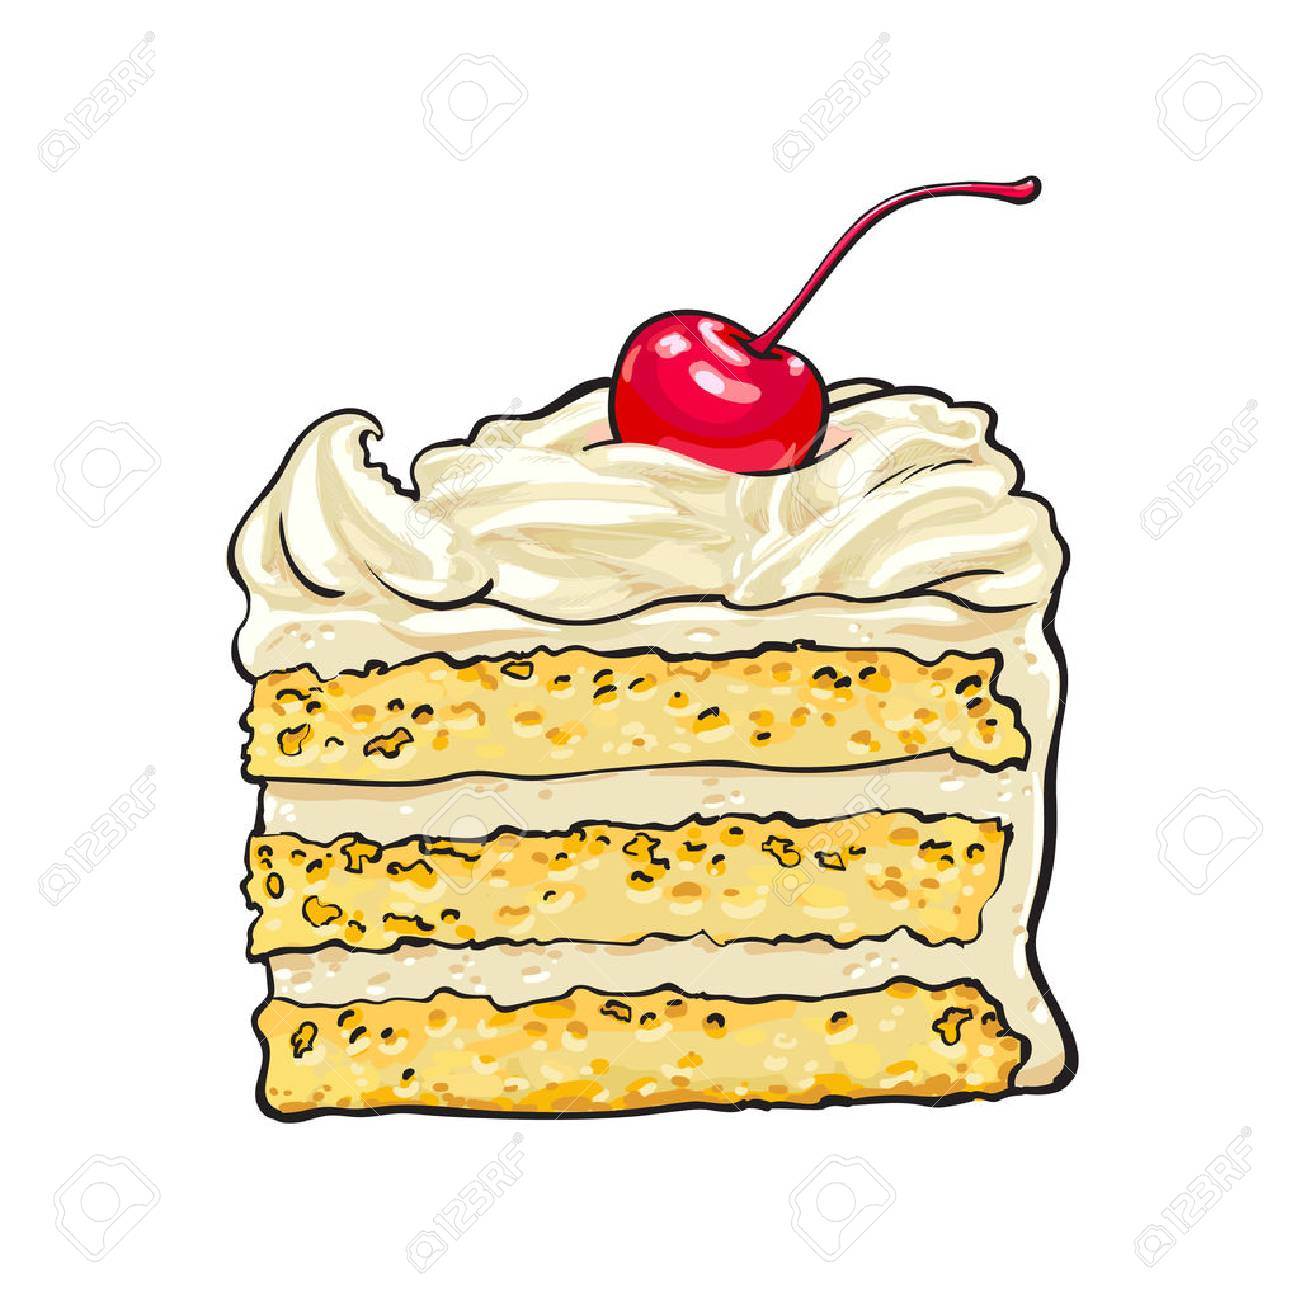 Hand drawn piece of classic layered cake with vanilla cream and cherry decoration, sketch style vector illustration isolated on white background. Realistic hand drawing of piece, slice of layered cake - 80975660